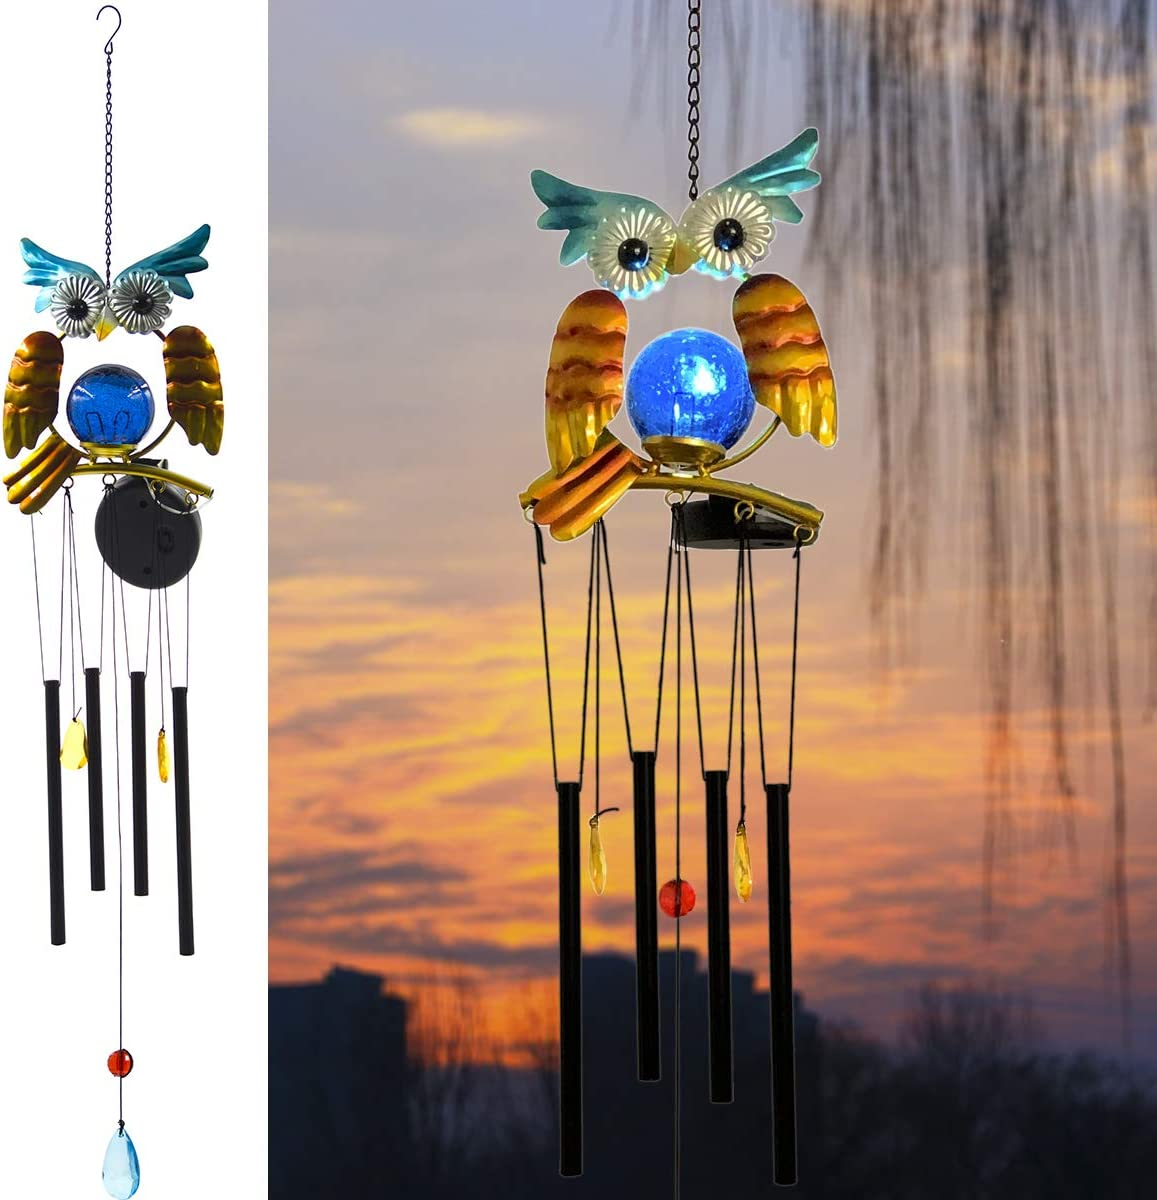 Eleven Direction Owl Solar Wind Chime,Solar Powered Lights with Aluminium Tubes for Ringing,Gift for Mom/Grandma/Wife,Decorations for Garden Outdoor Lawn Patio Yard Porch